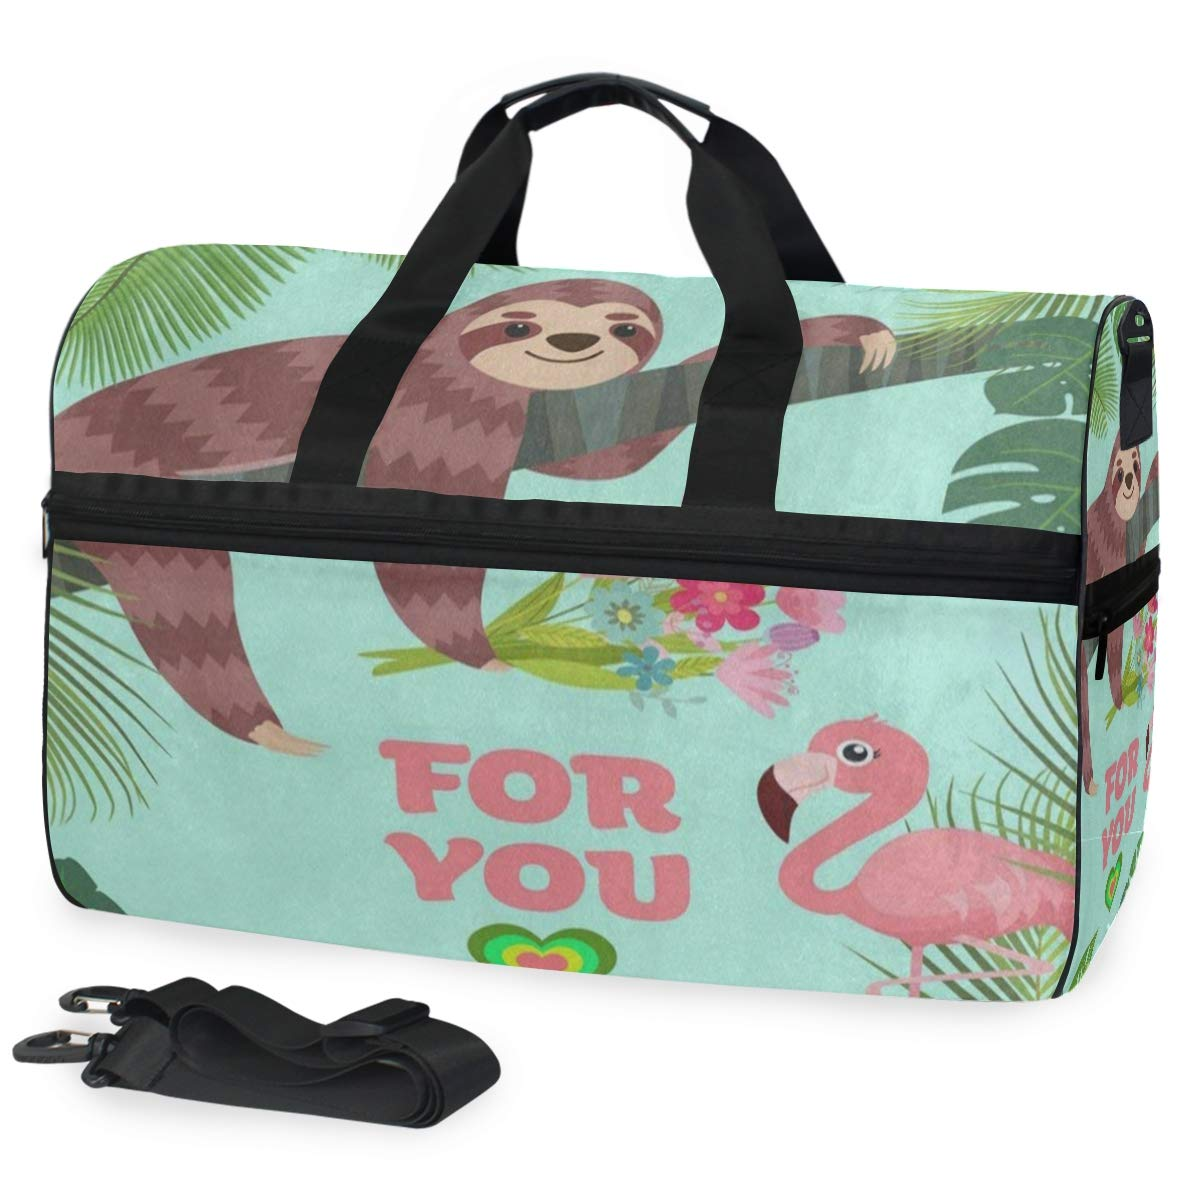 Travel Tote Luggage Weekender Duffle Bag Flamingo Sloth Palm Tree Large Canvas shoulder bag with Shoe Compartment